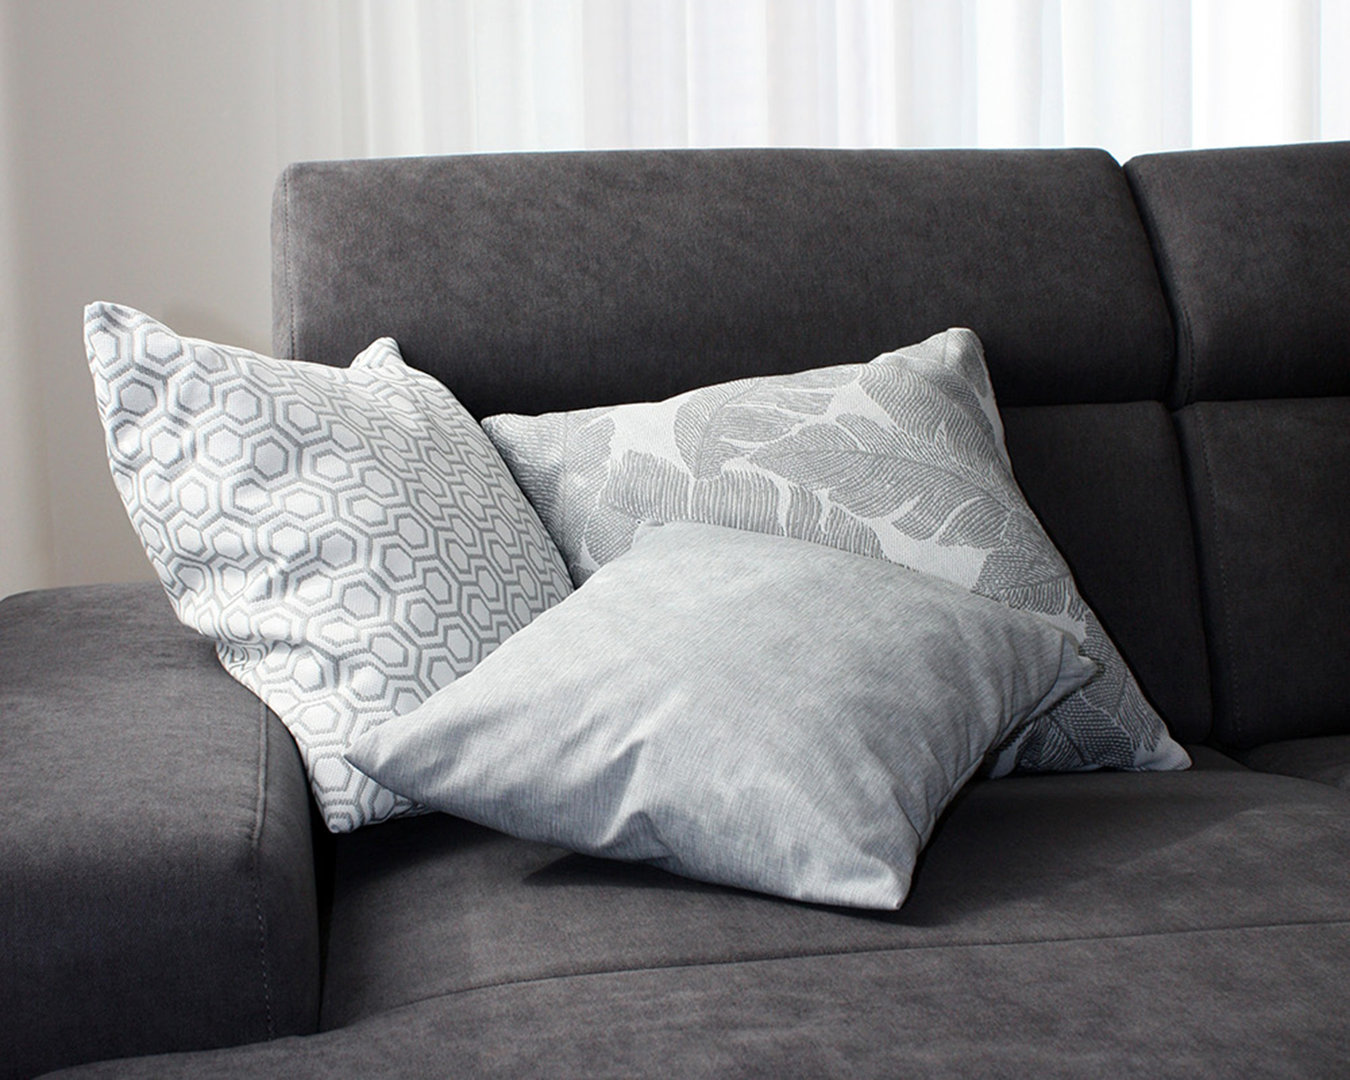 Active Line sofa or decorative cushion cover for In & Outdoor